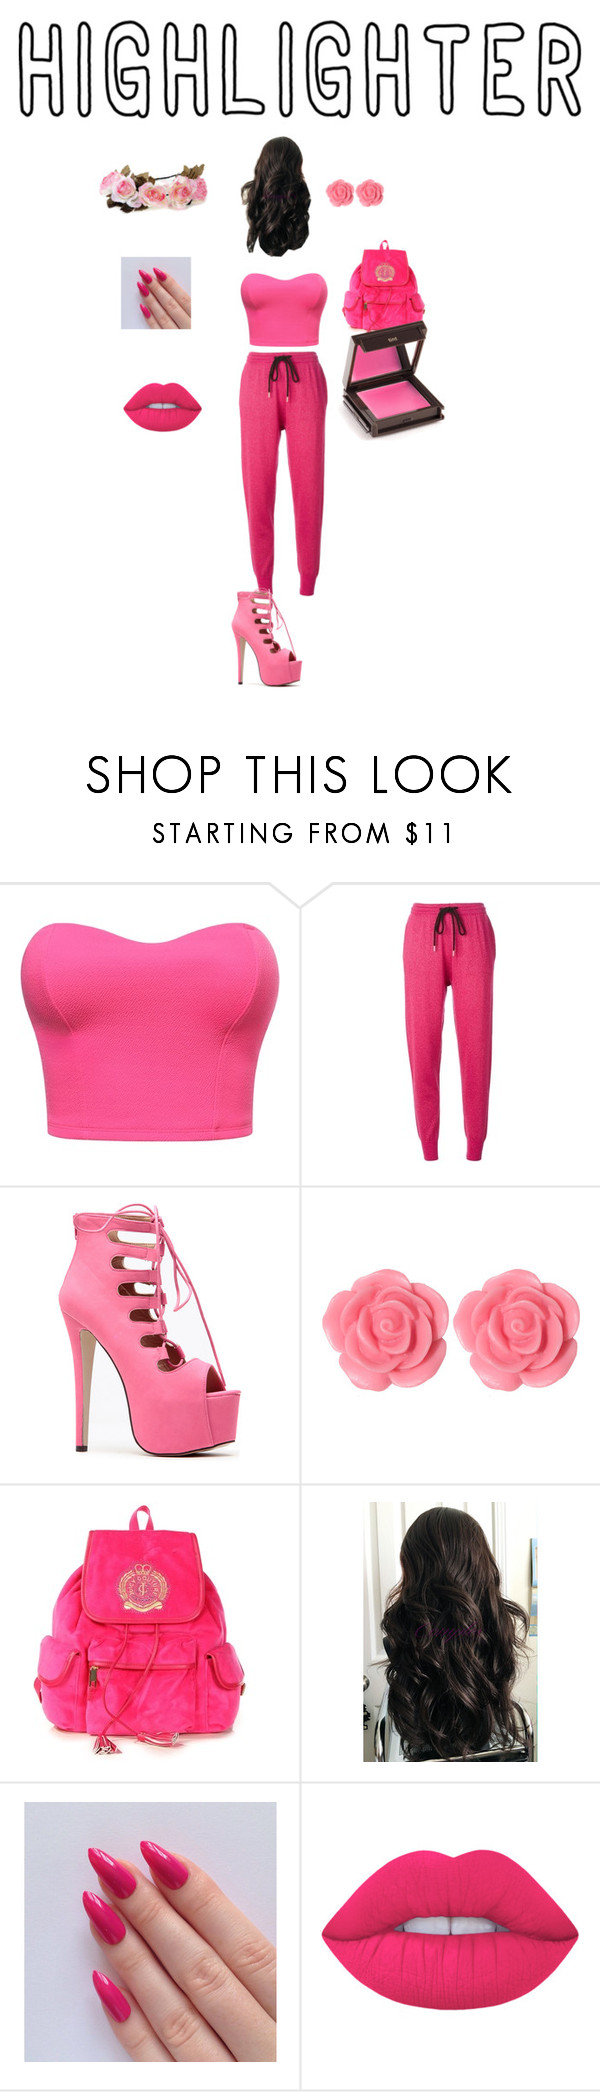 """Untitled #2"" by danielle062504 ❤ liked on Polyvore featuring Markus Lupfer, Dollydagger, Juicy Couture, Lime Crime and Jouer"